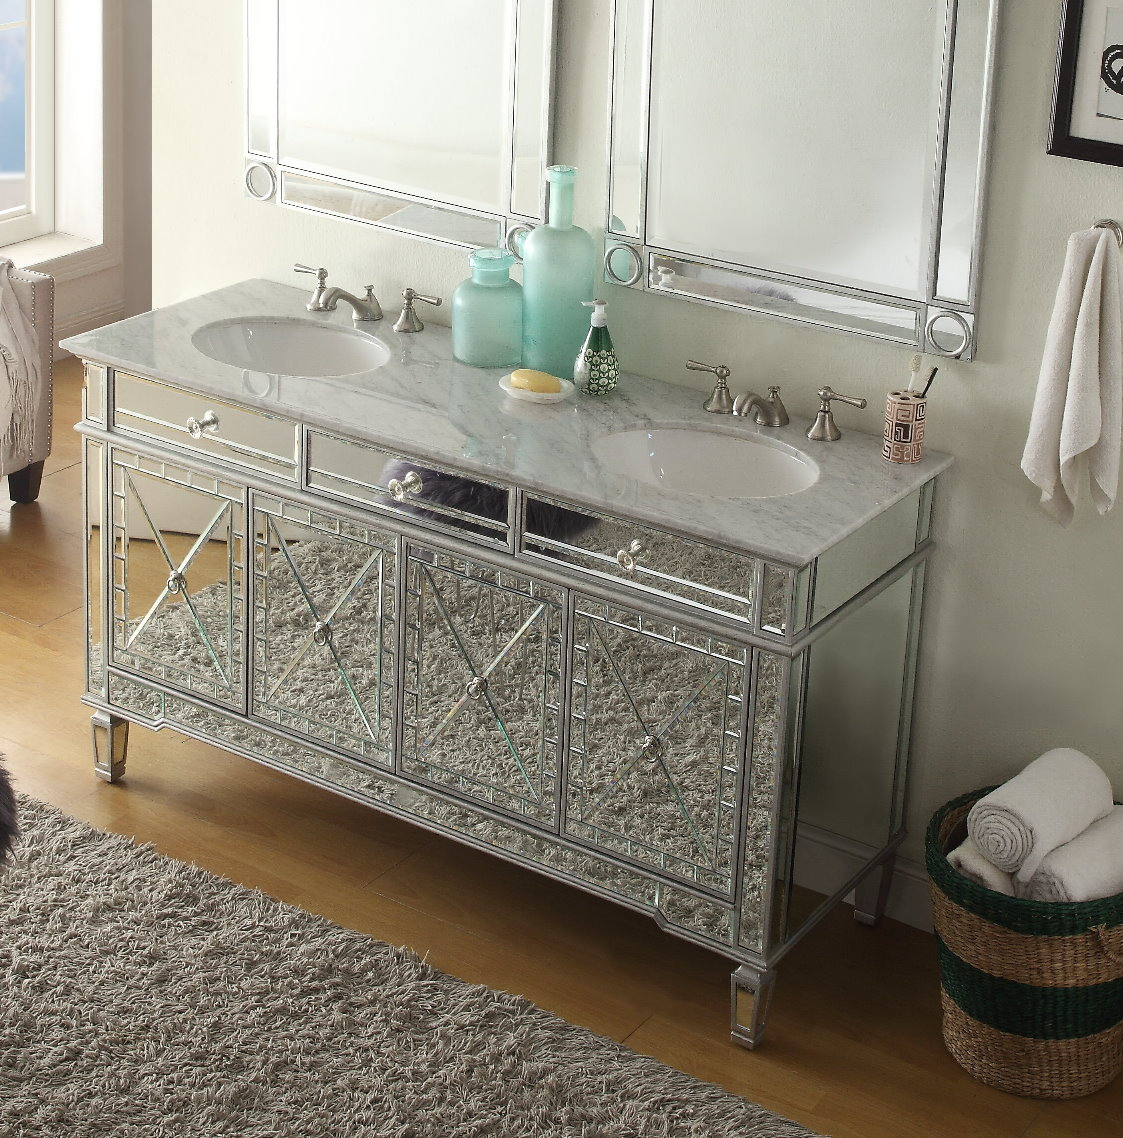 Mirrored Bathroom Vanity With Sink 60 Inch Double Sink Bathroom Vanity Art Deco Mirrored